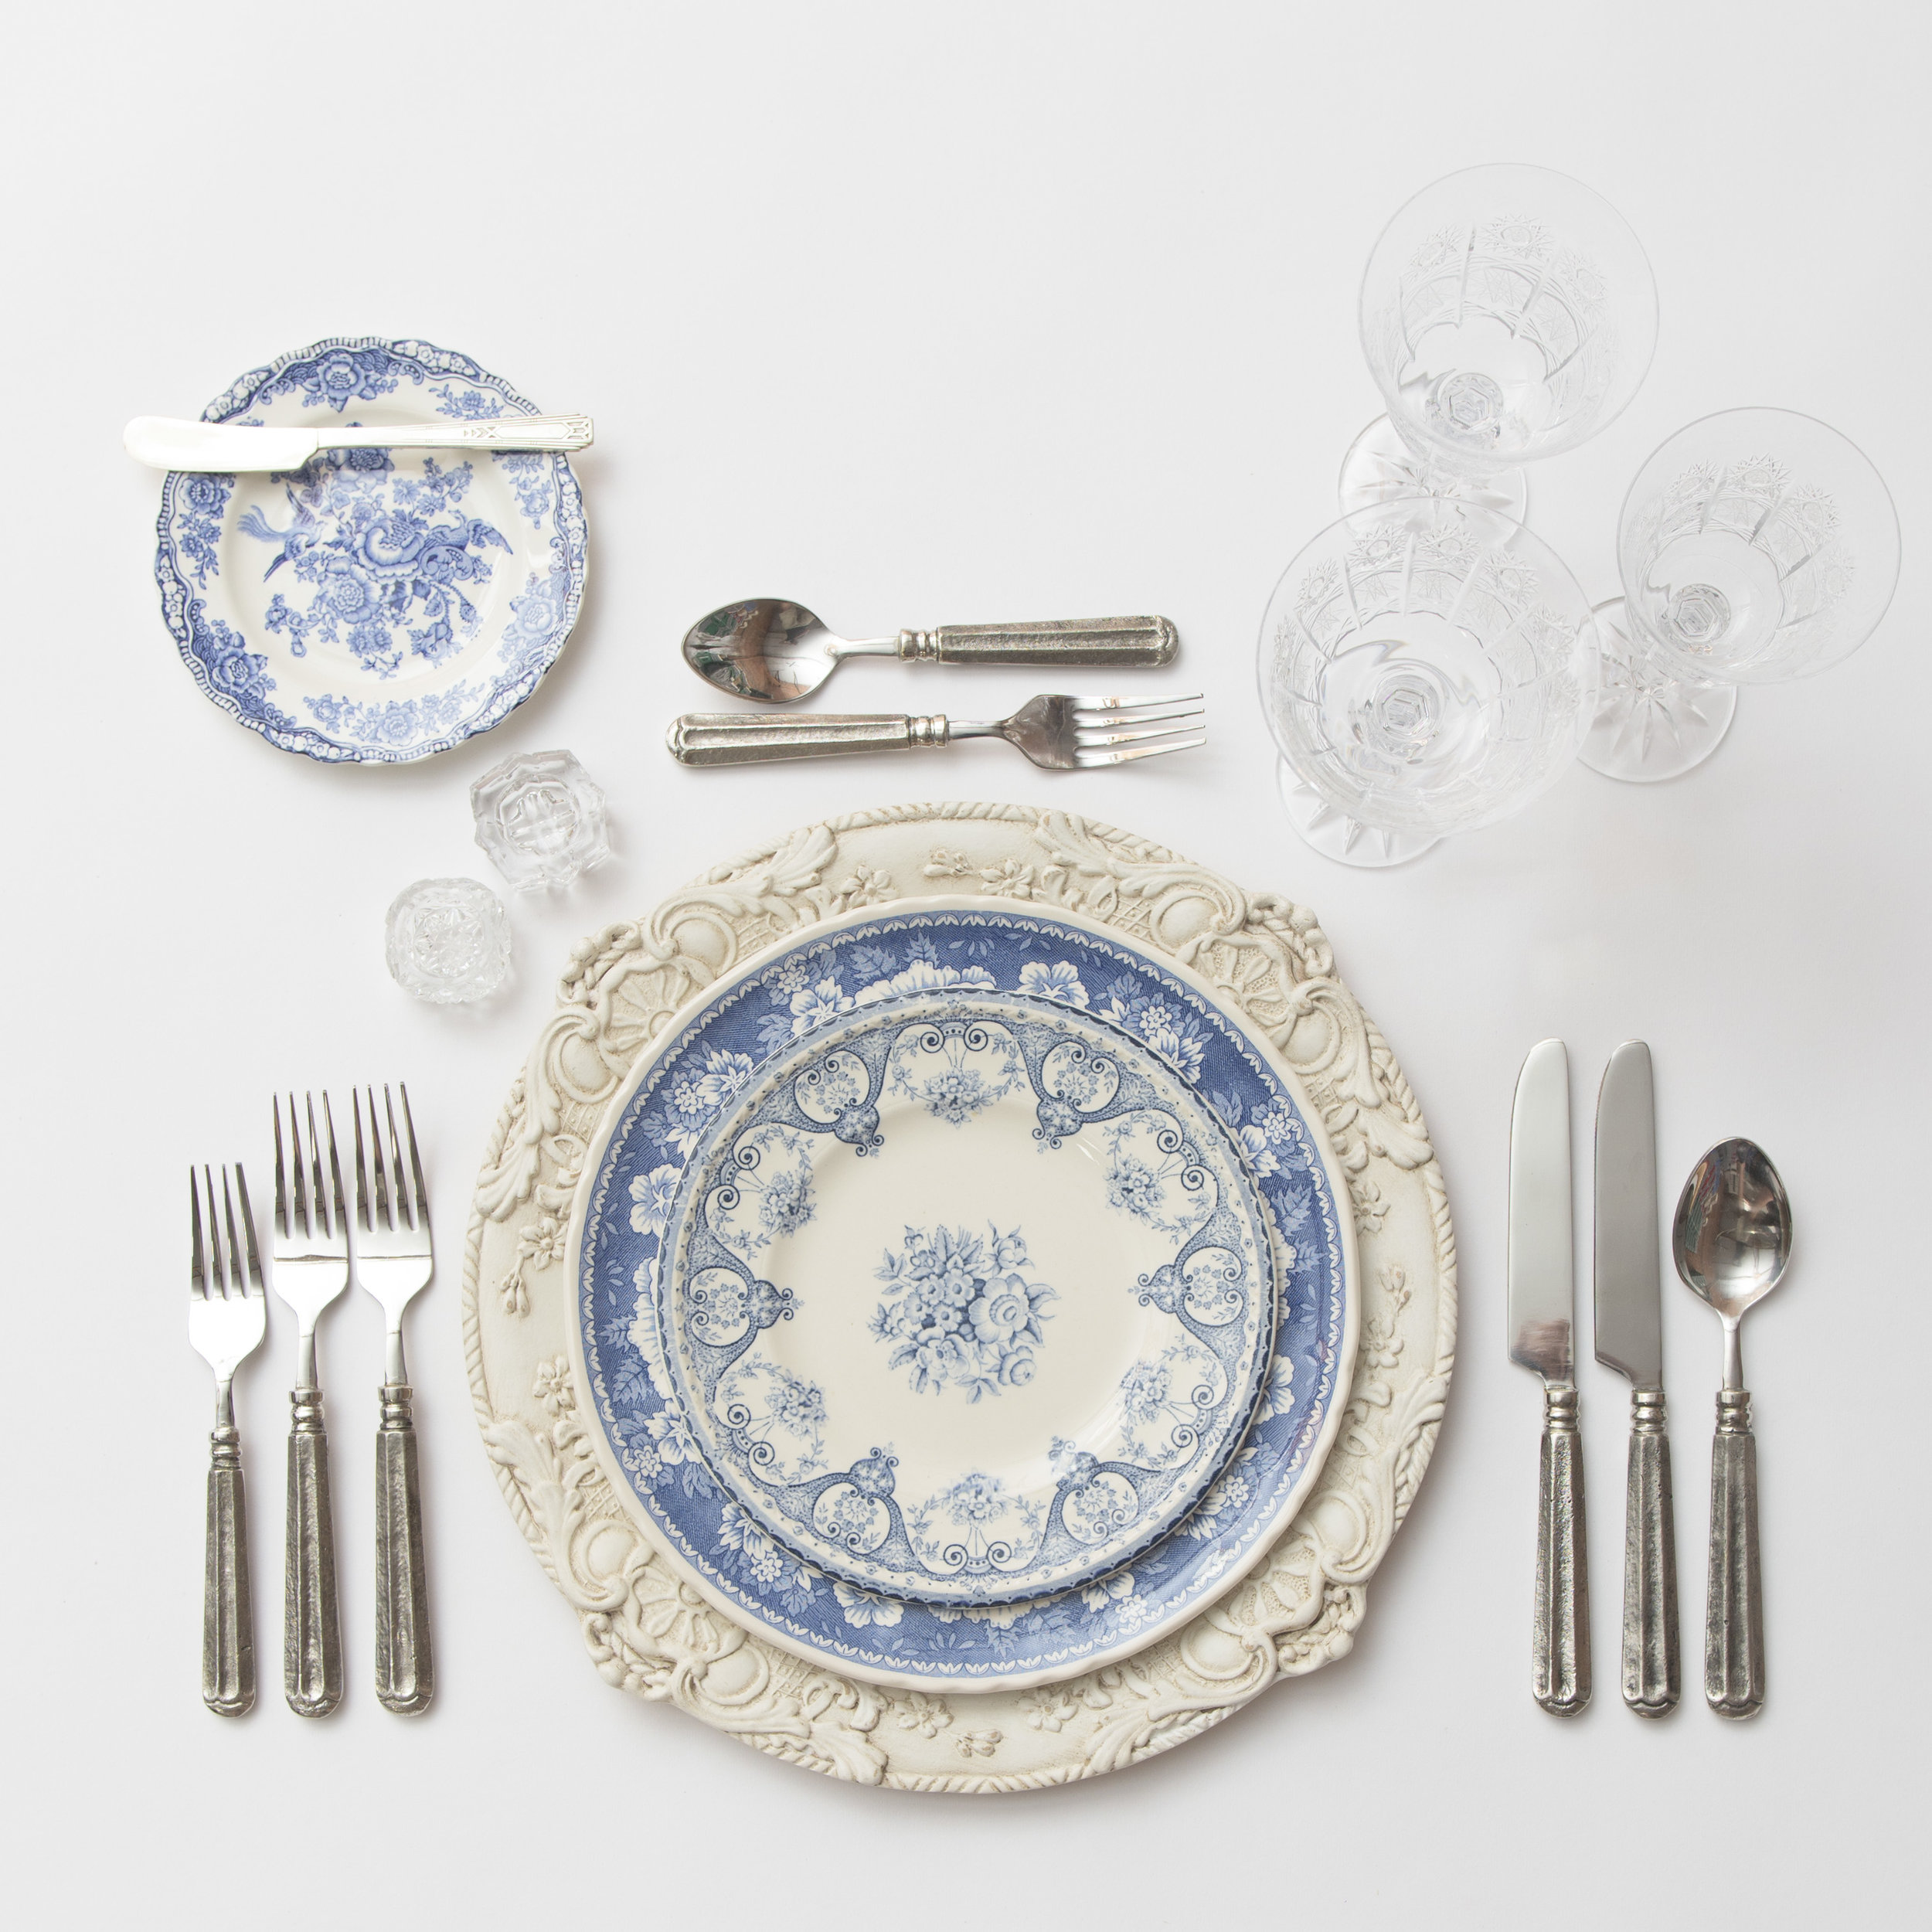 RENT: Verona Chargers in Antique White + Blue Garden Collection Vintage China + Tuscan Flatware in Pewter + Czech Crystal Stemware + Antique Crystal Salt Cellars  SHOP: Verona Chargers in Antique White